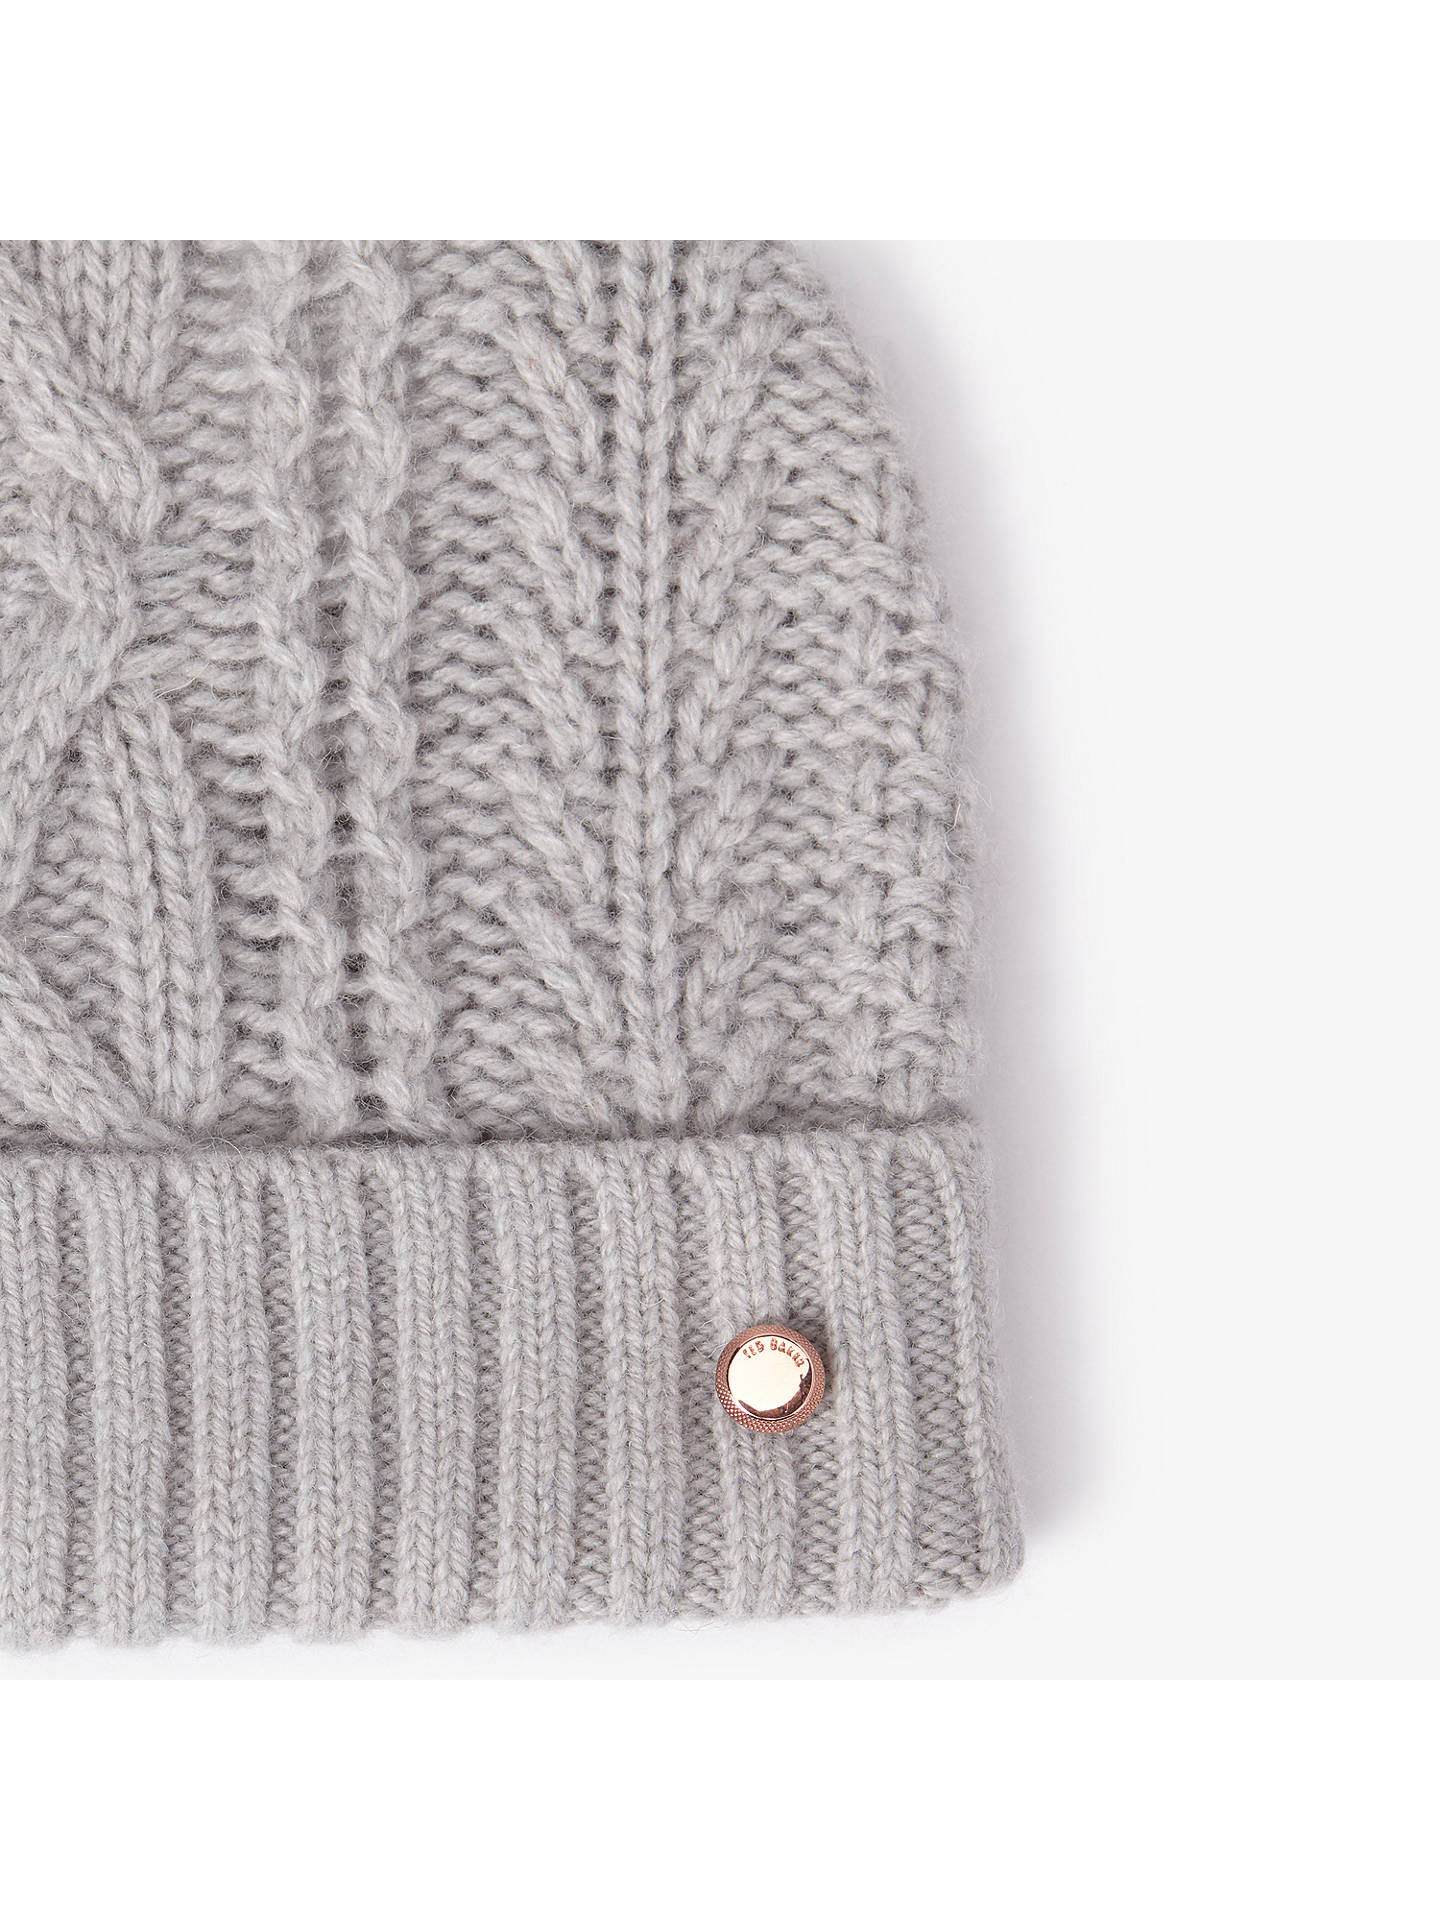 ... BuyTed Baker Wool Blend Cable Knit Faux Fur Pom Pom Beanie Hat 945901730155